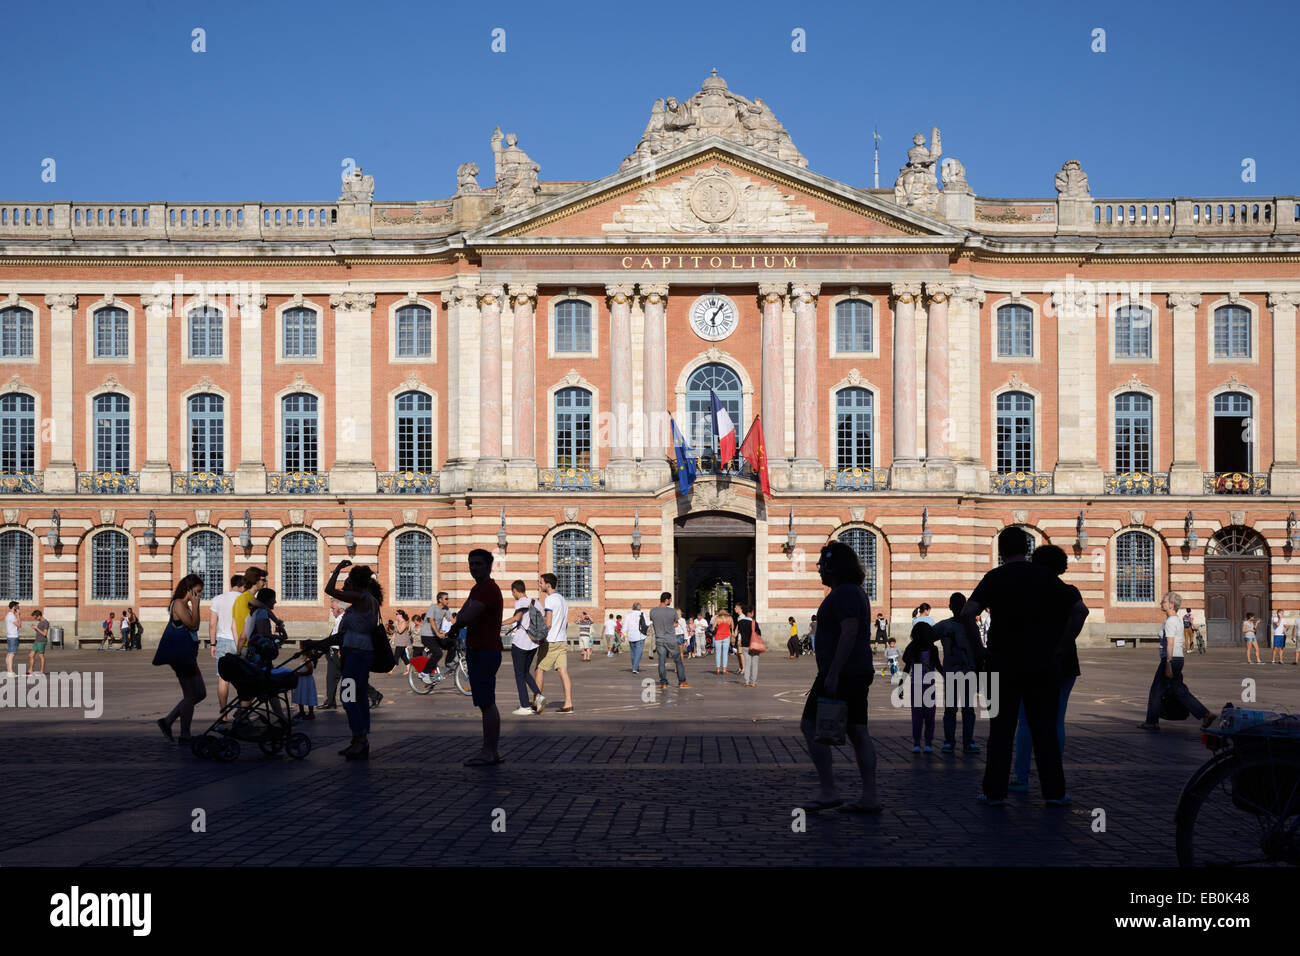 Town Hall or Mairie Facade on the Place du Capitole Town Square Toulouse France Stock Photo